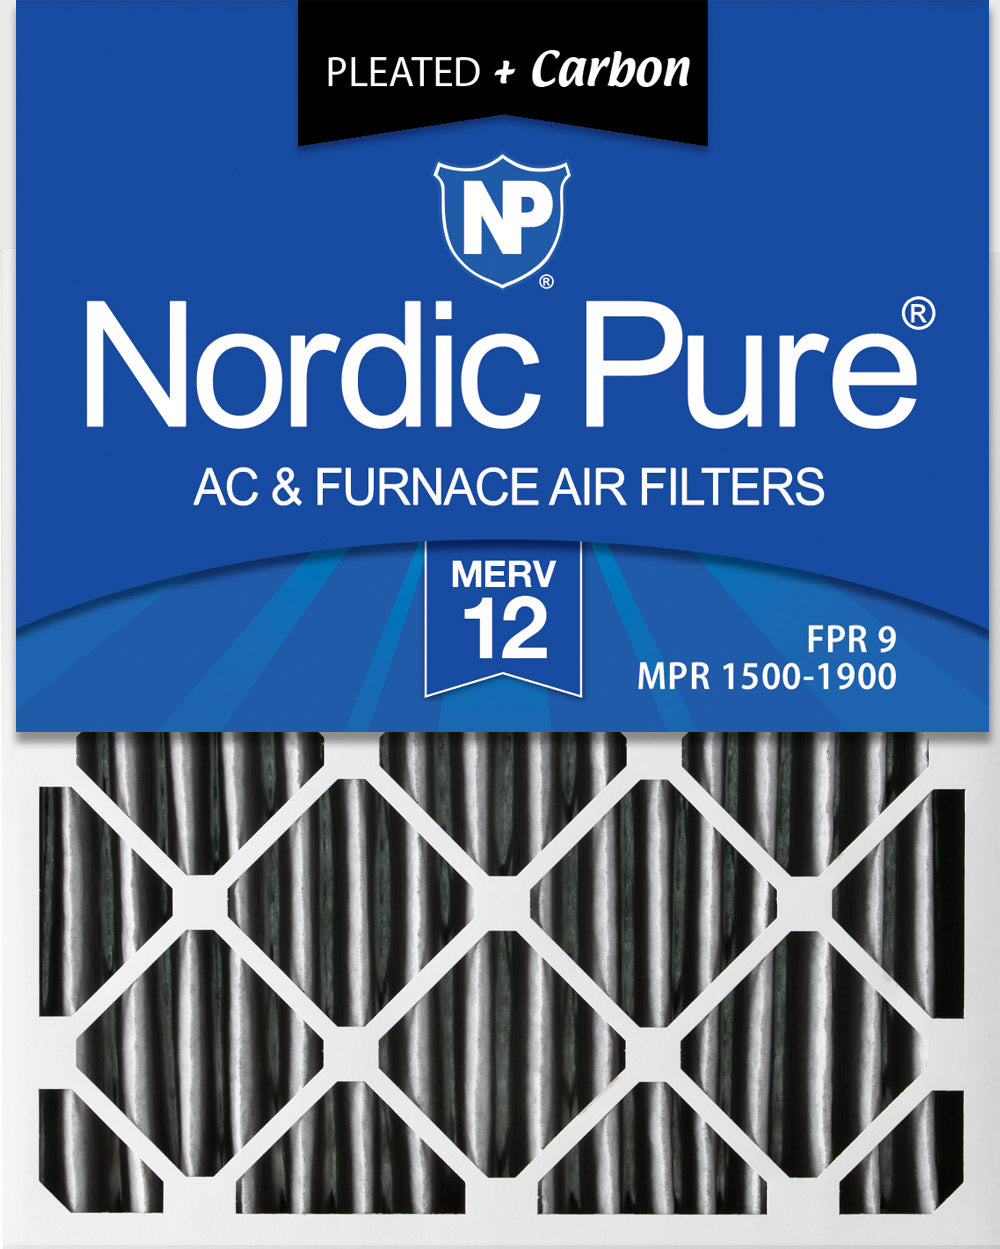 20x25x2 Furnace Air Filters MERV 12 Pleated Plus Carbon 3 Pack